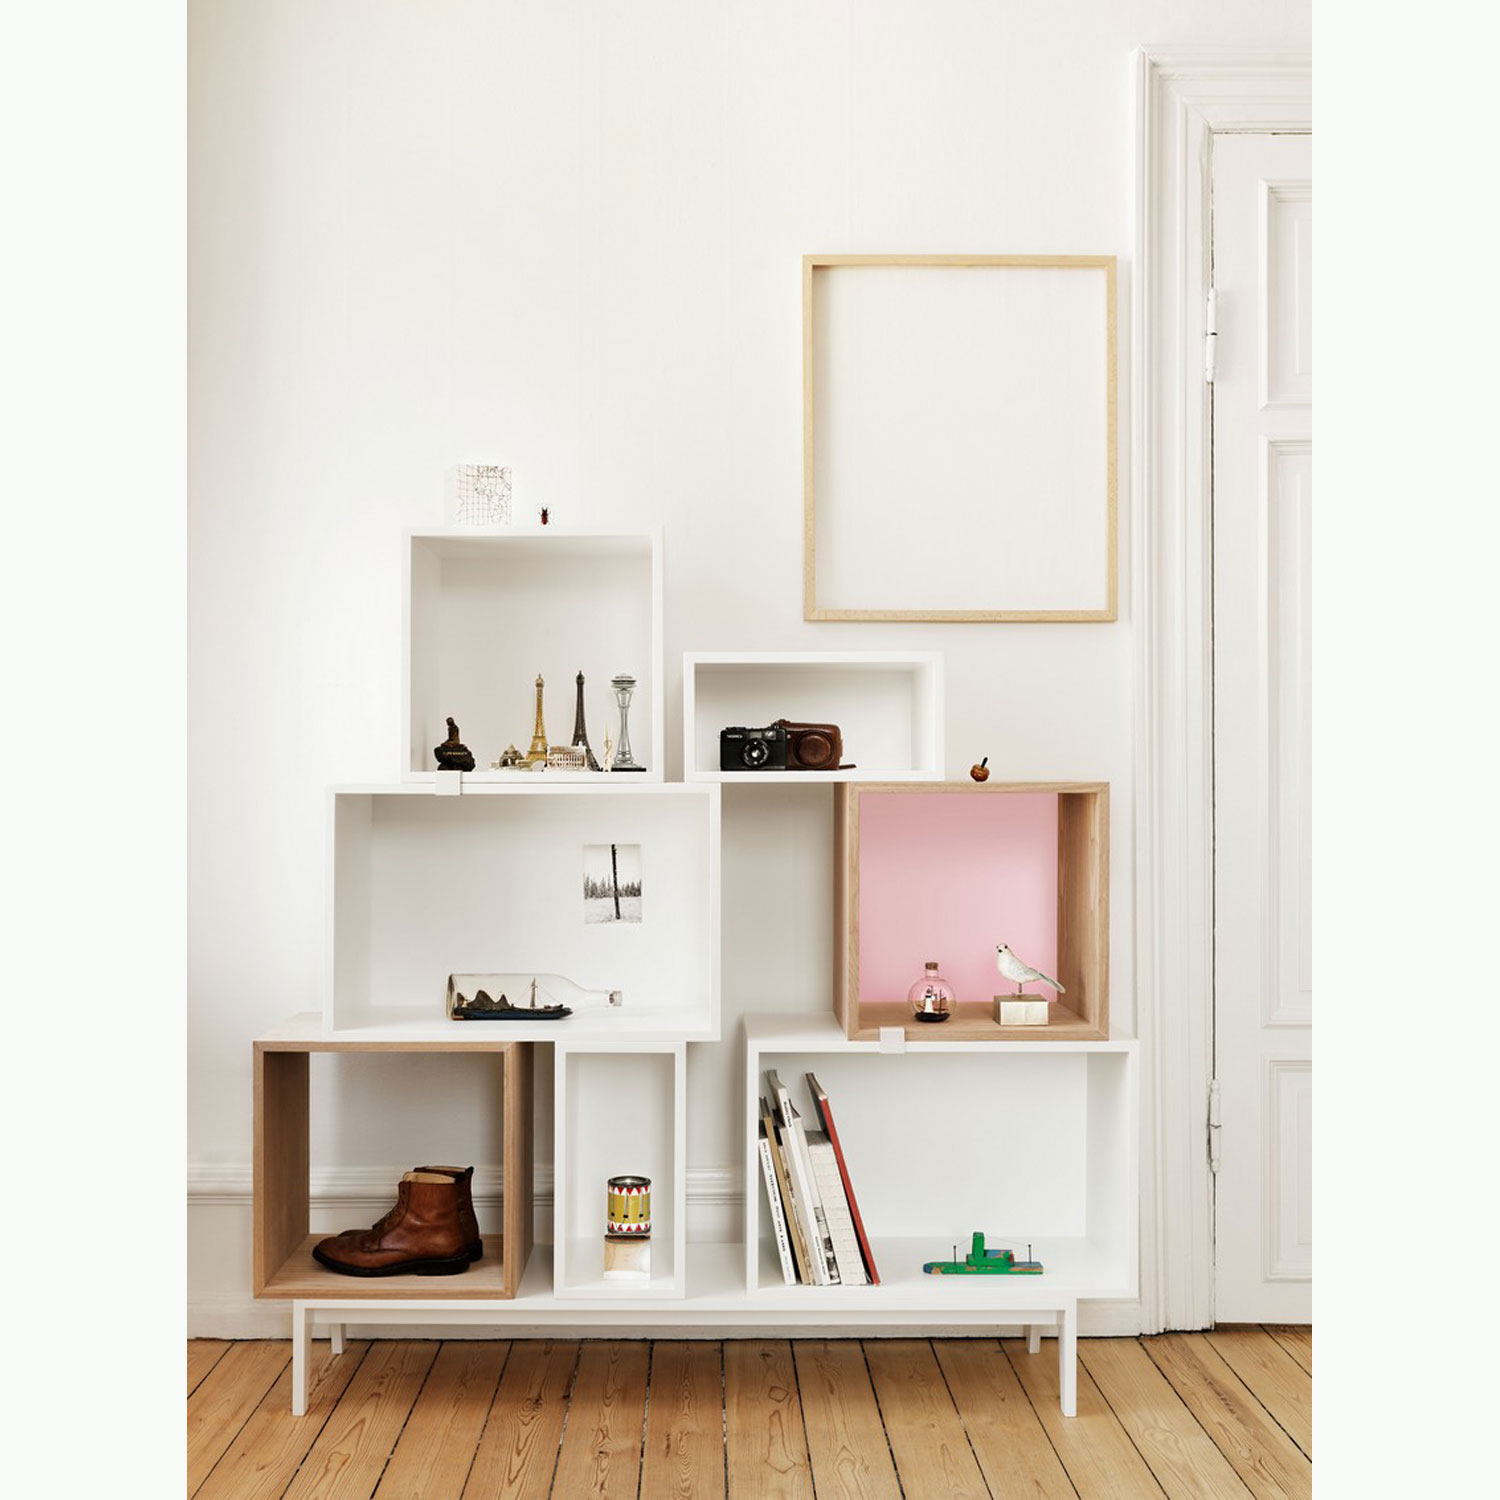 Mini stacked hylla, vit fr̴n muuto Рk̦p online p̴ rum21.se